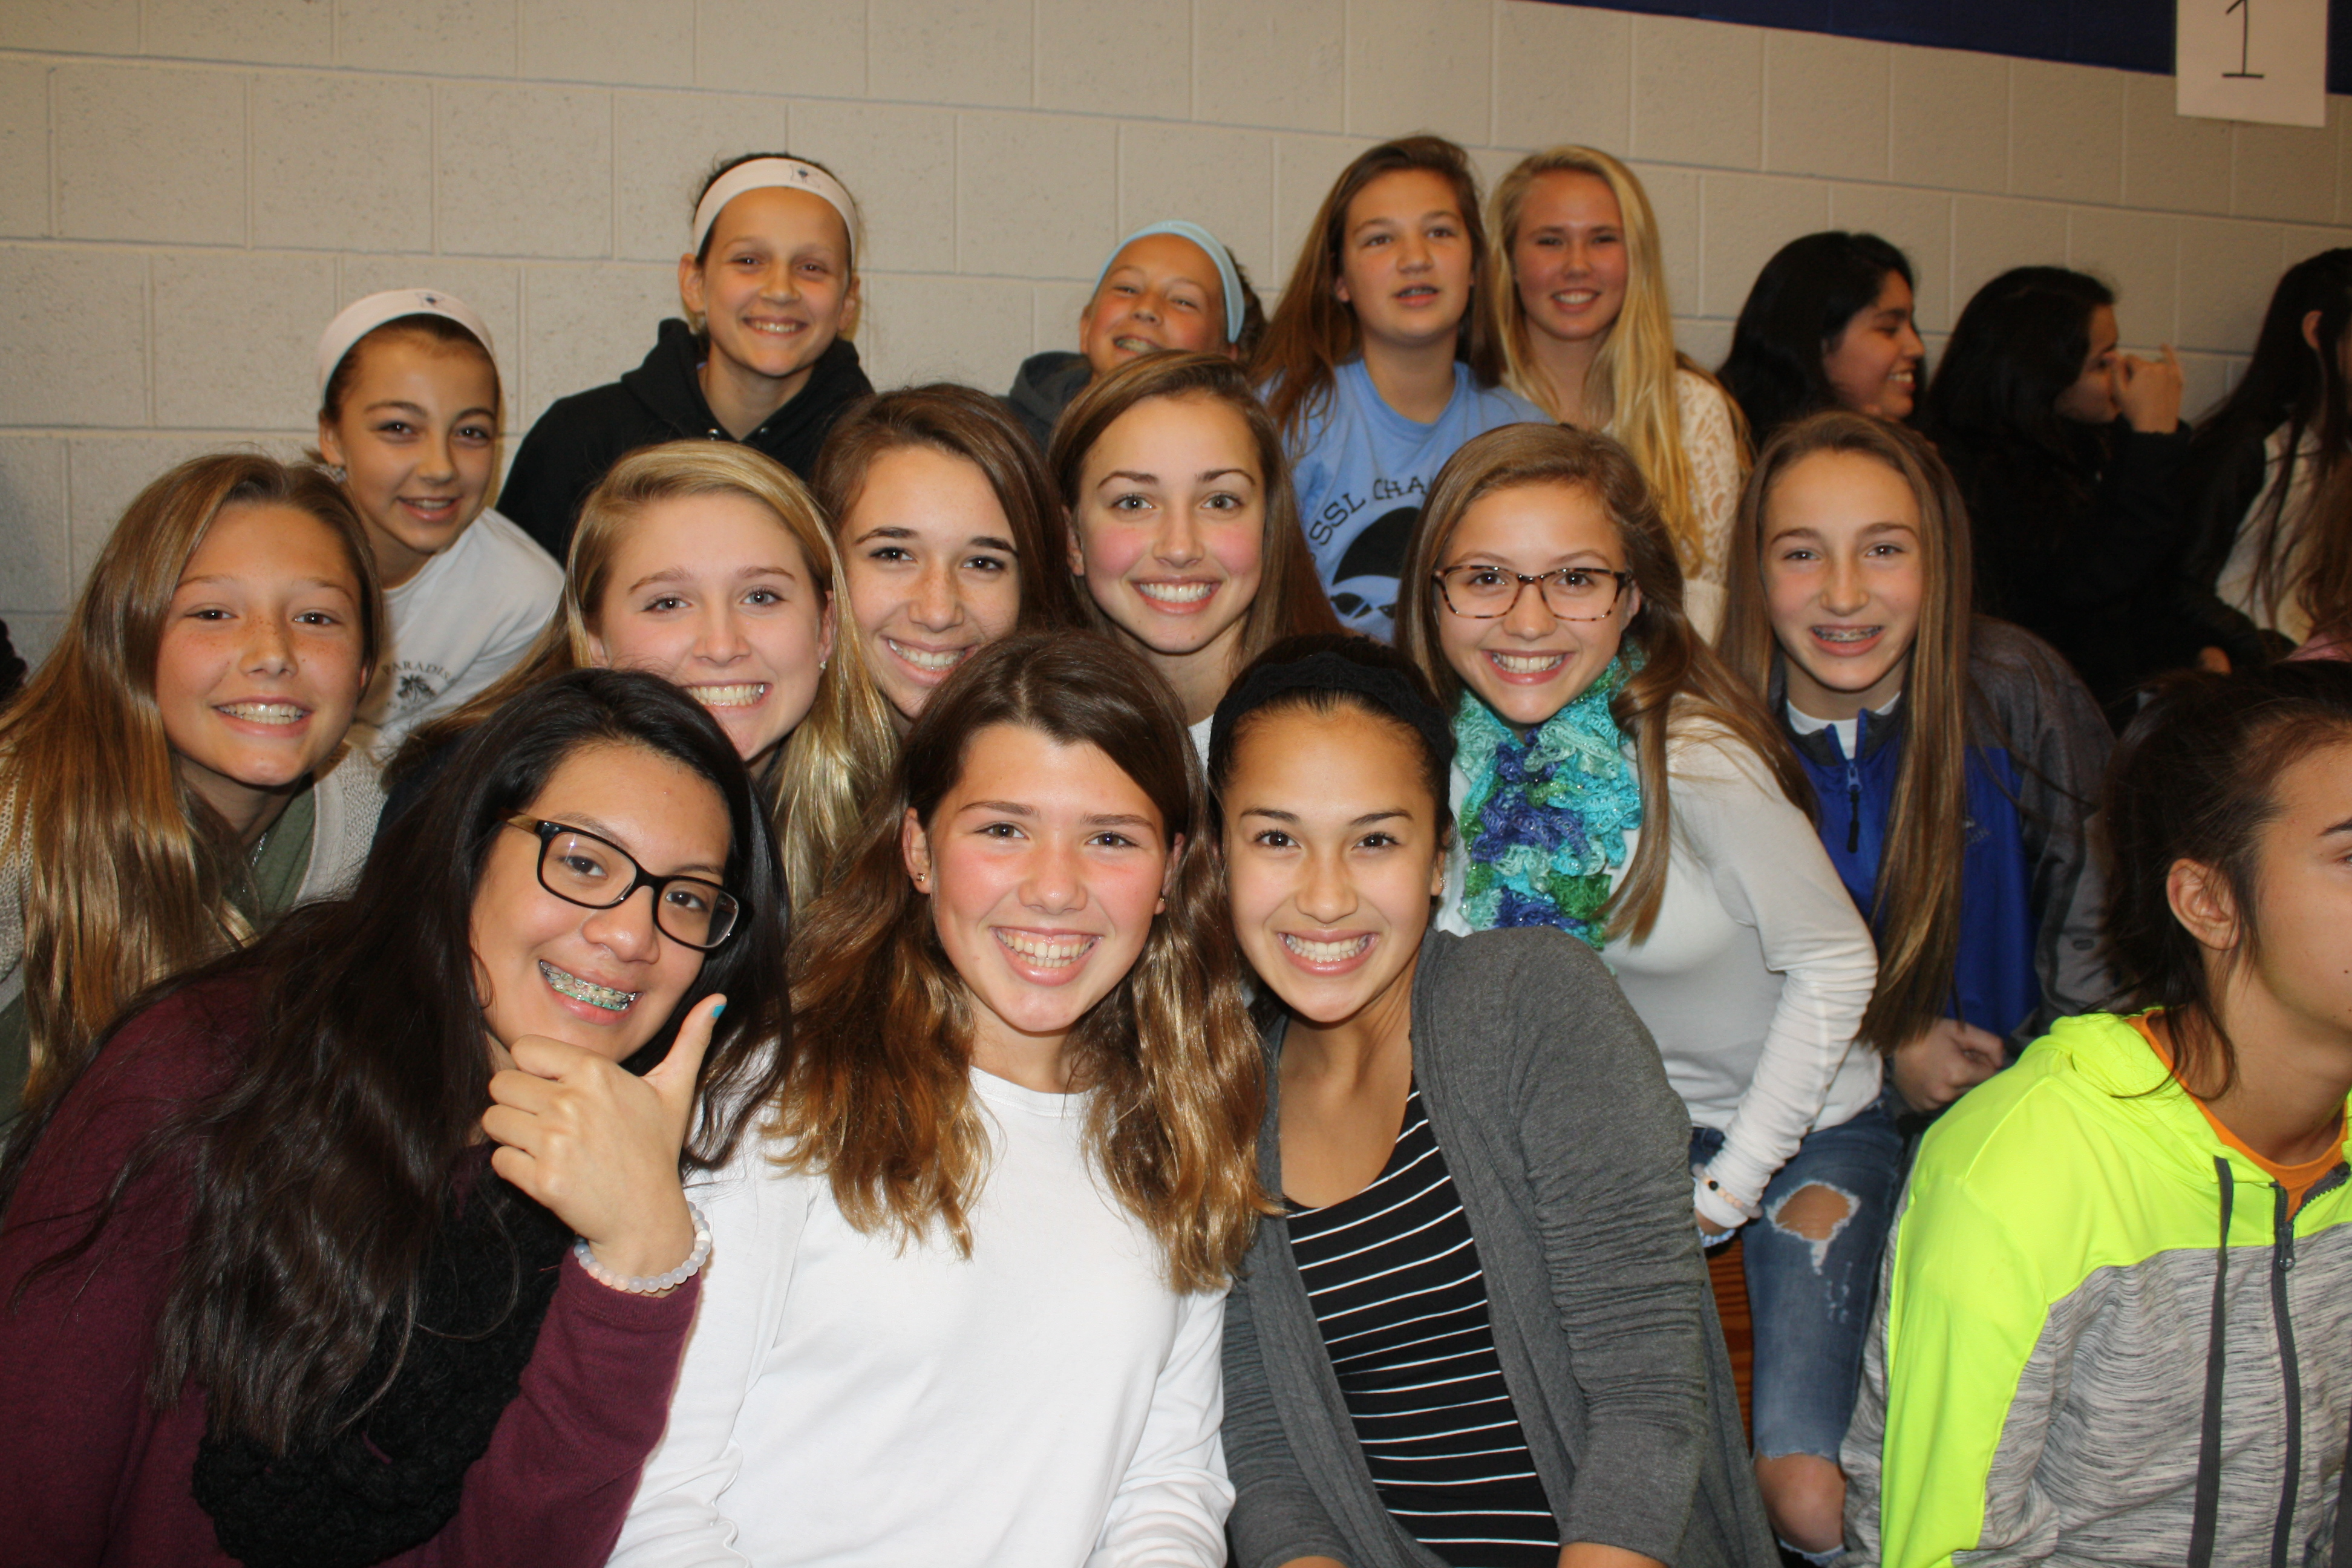 fans at the volleyball game